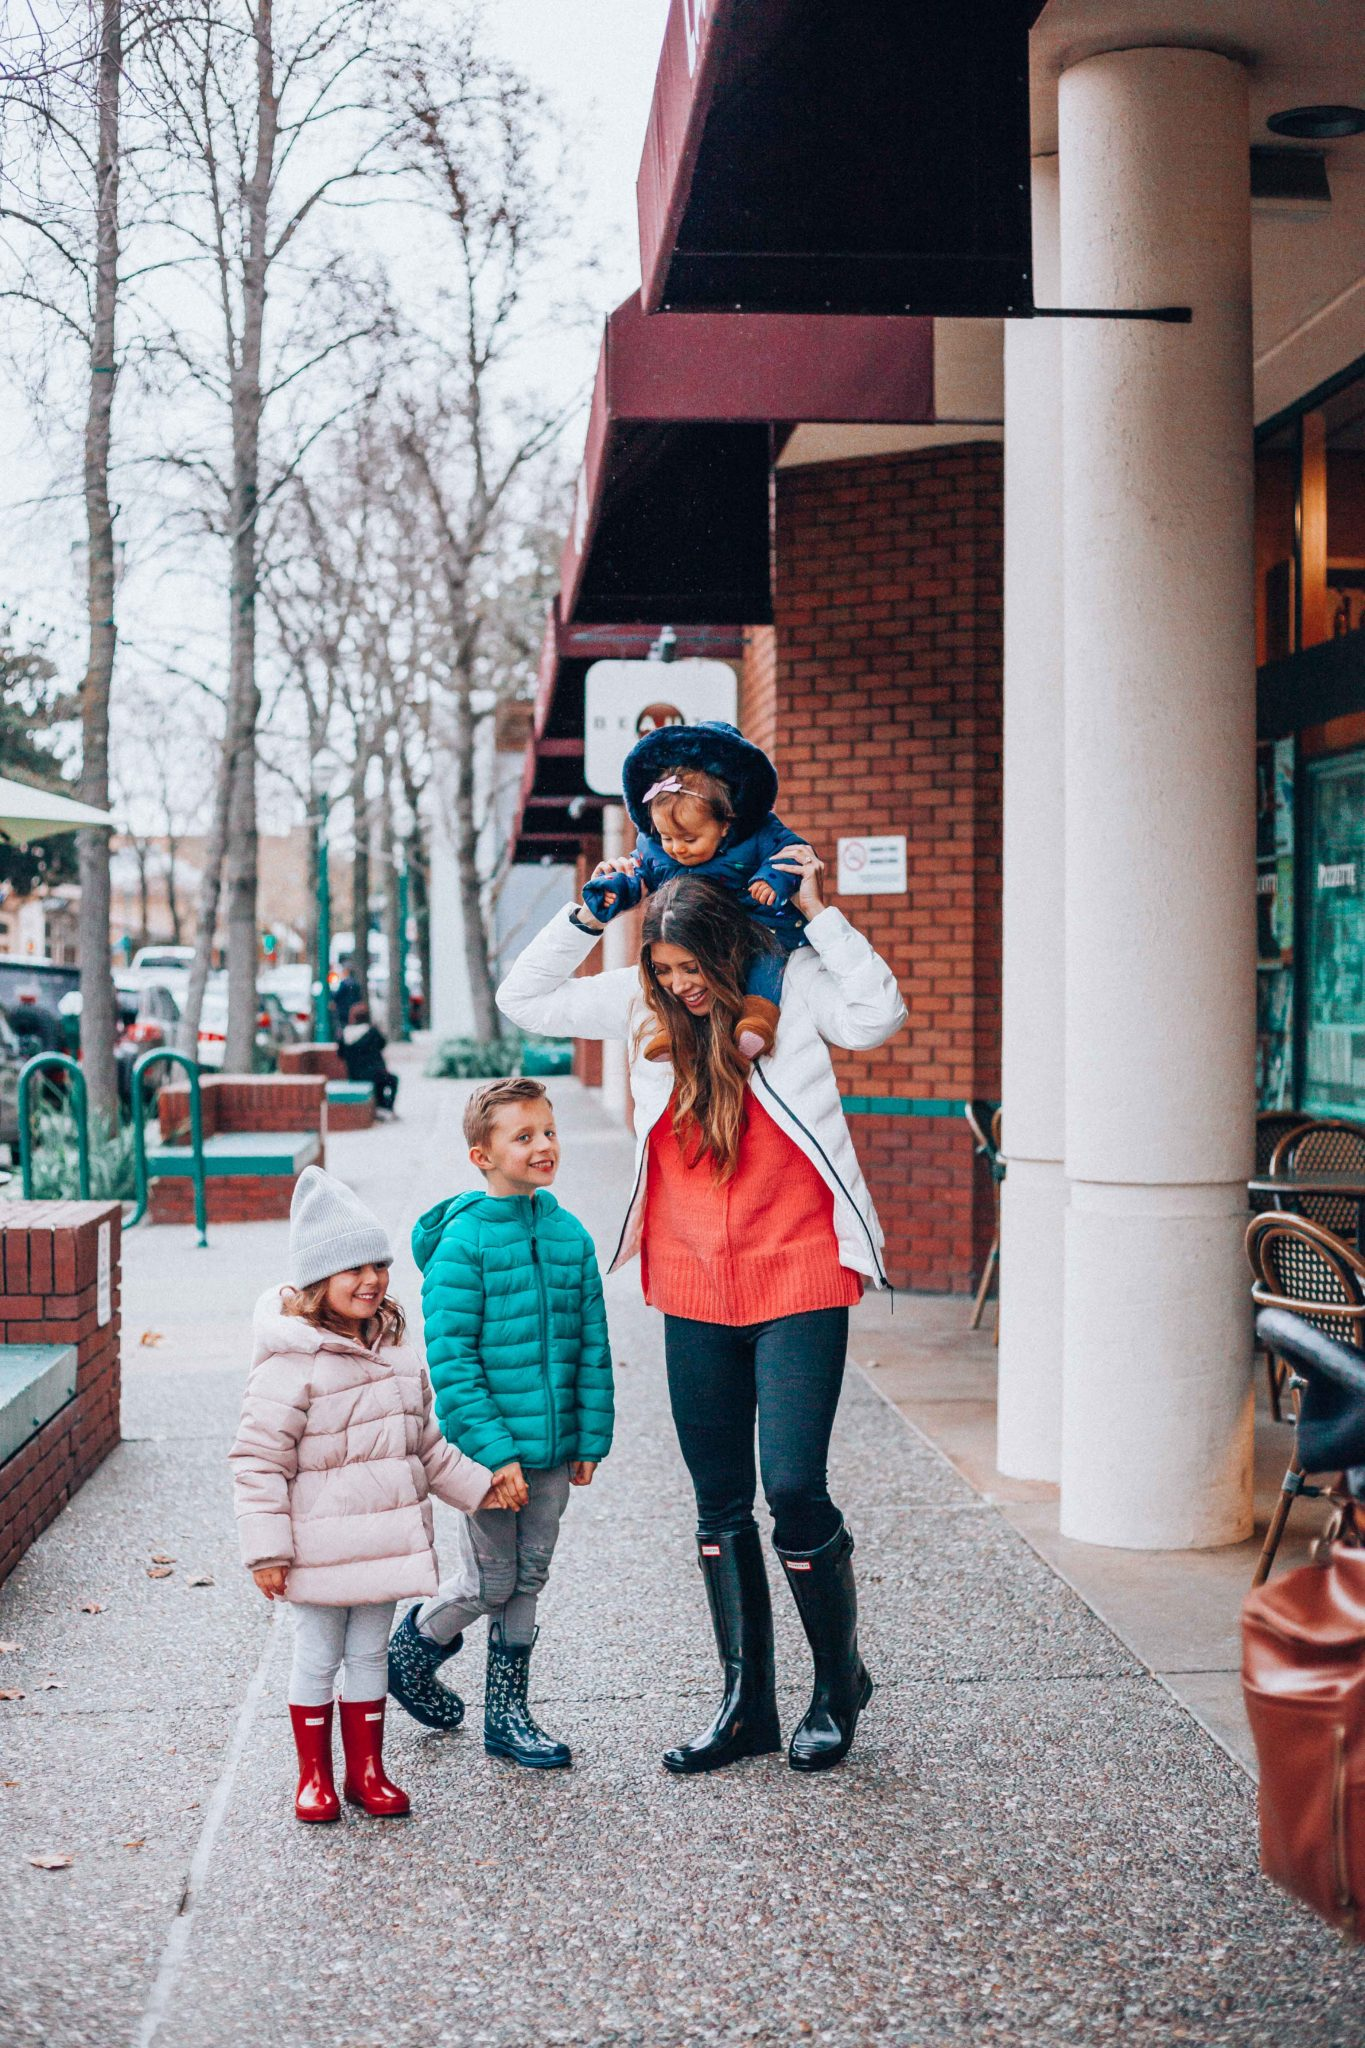 Outdoor Fashion for The Whole Family by popular San Diego fashion blogger The Girl in The Yellow Dress